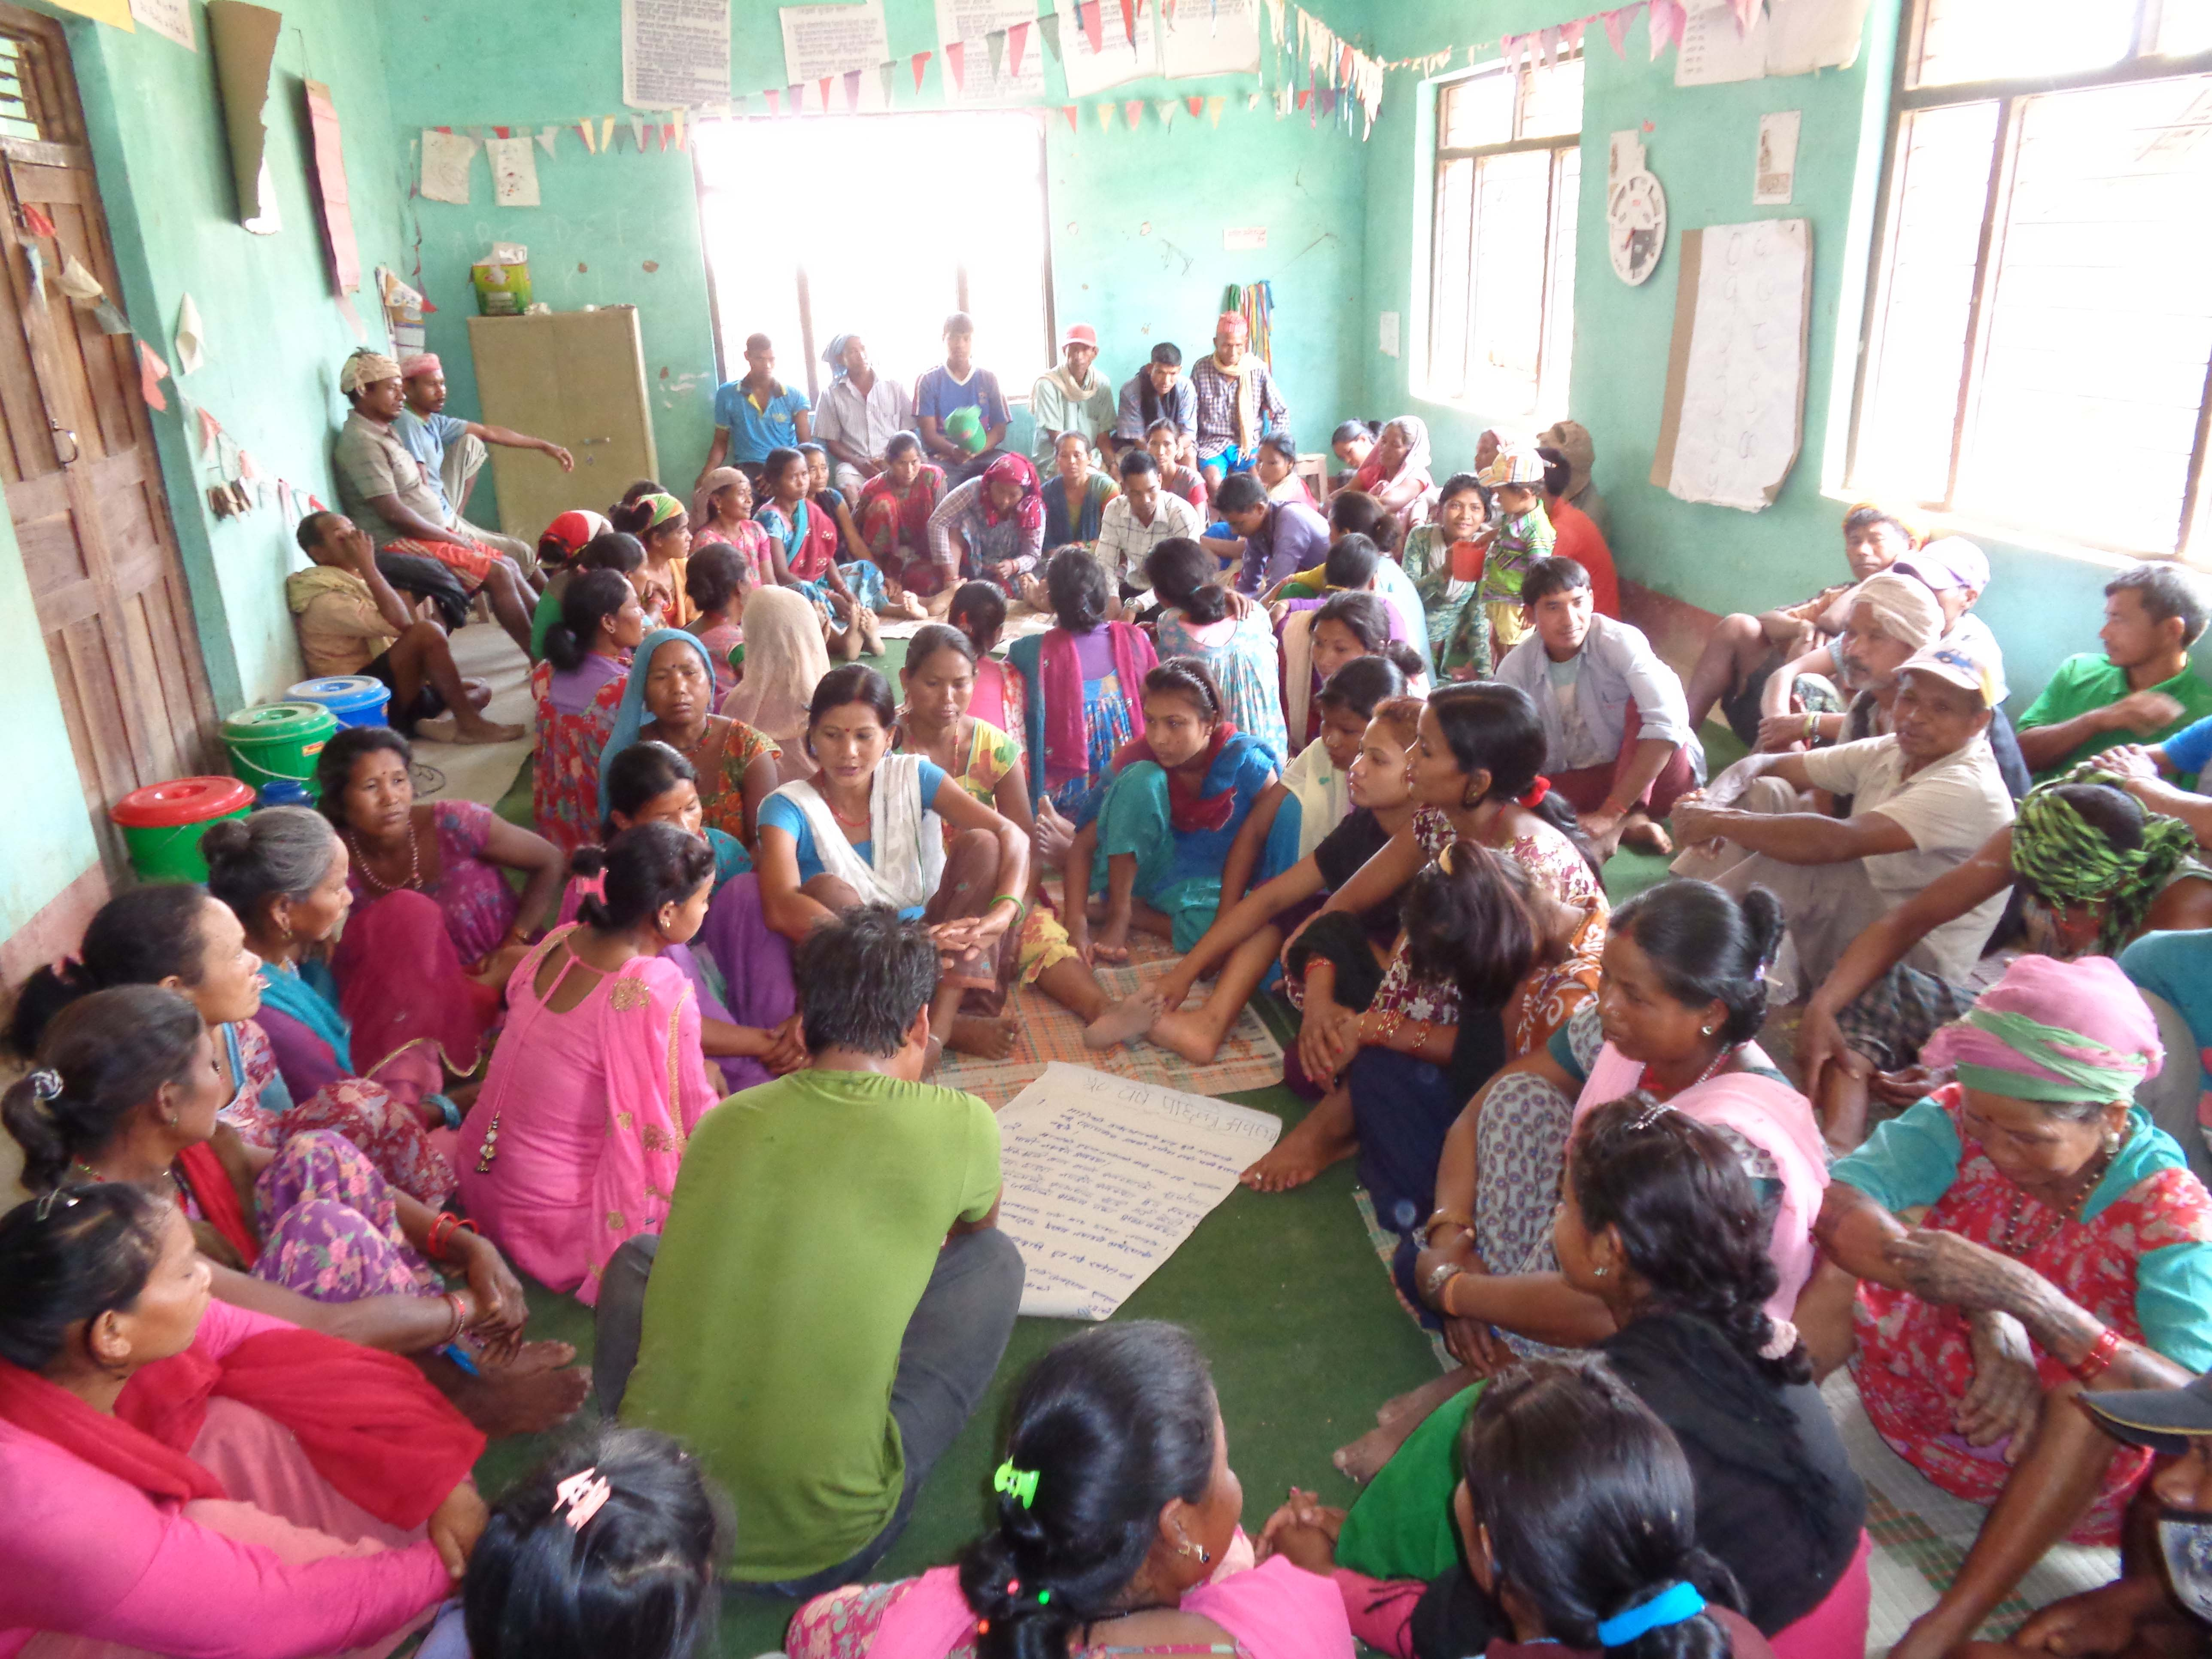 Women in Padanaha community, Bardiya  District, Nepal discuss community bylaws, led by the Community Self-Reliance Centre (CSRC).